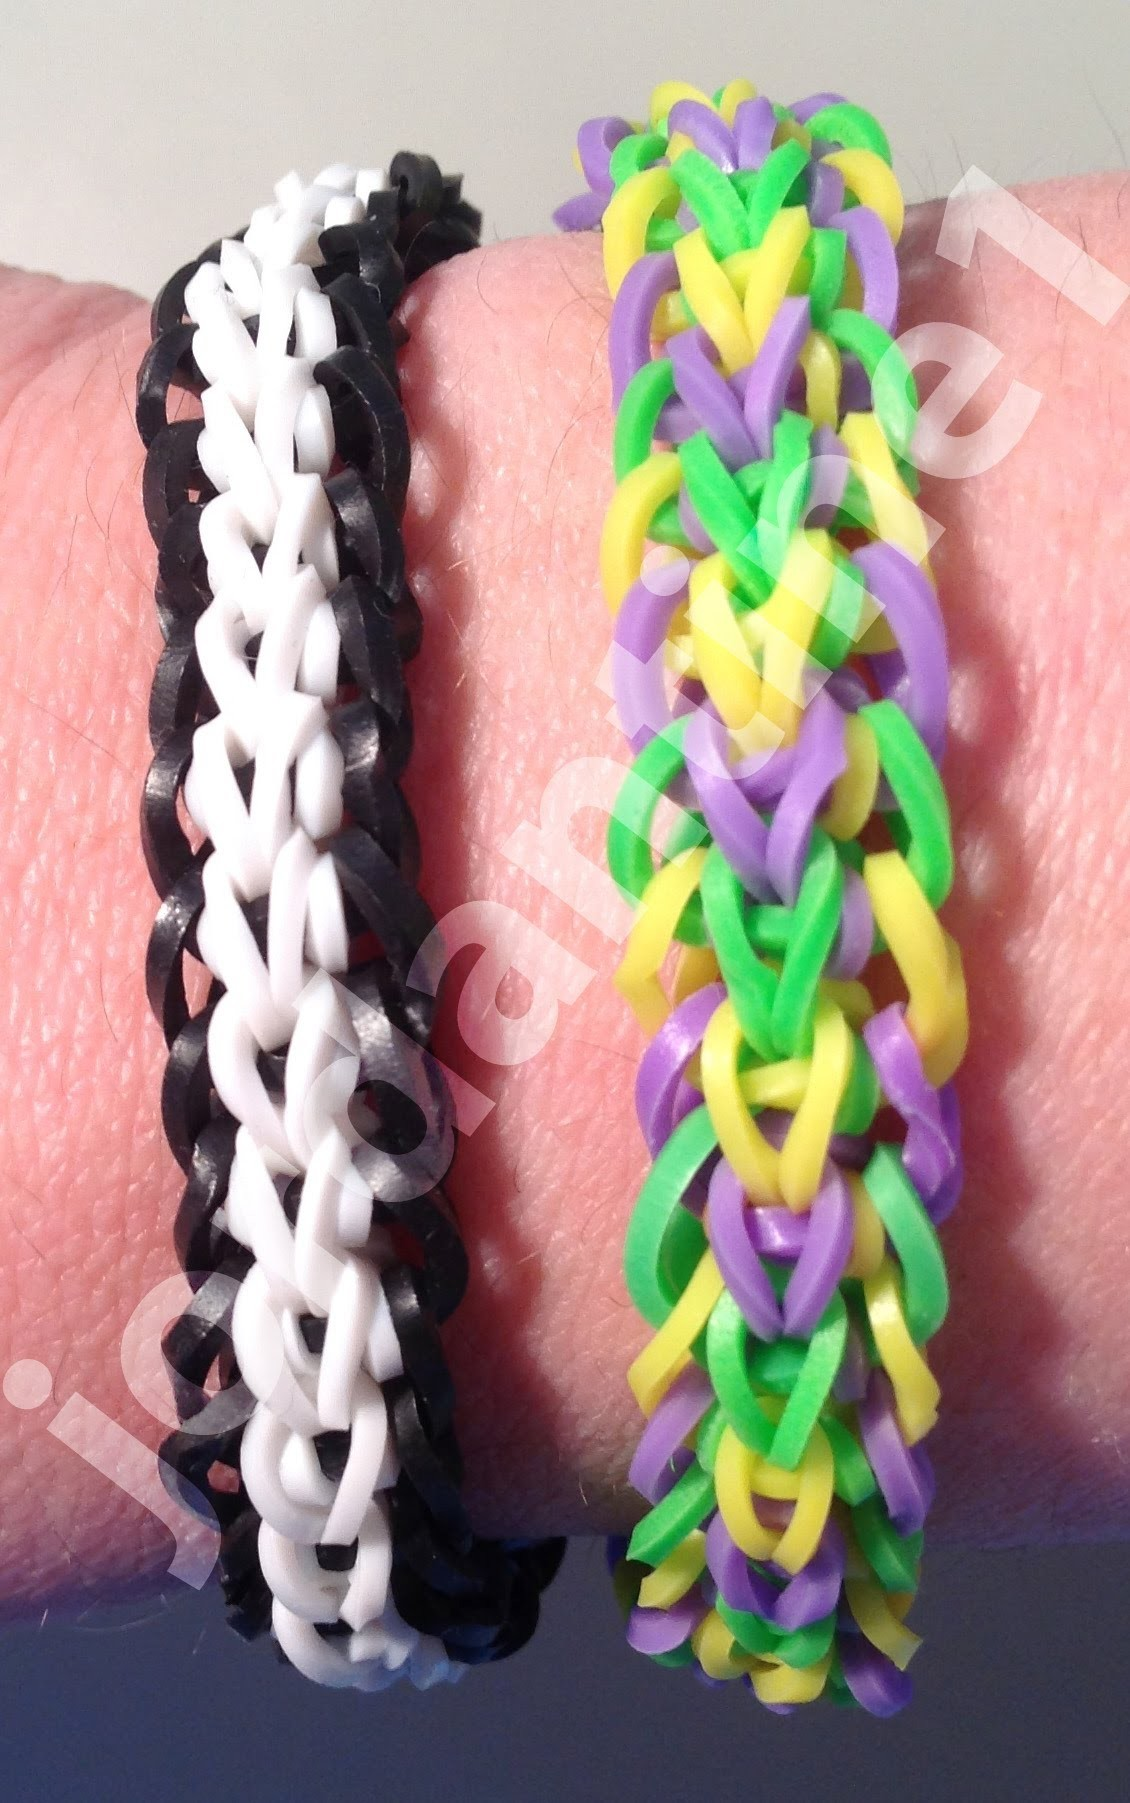 New Crossback Bracelet - Rainbow Loom, Wonder Loom, Monster Tail, Finger Loom